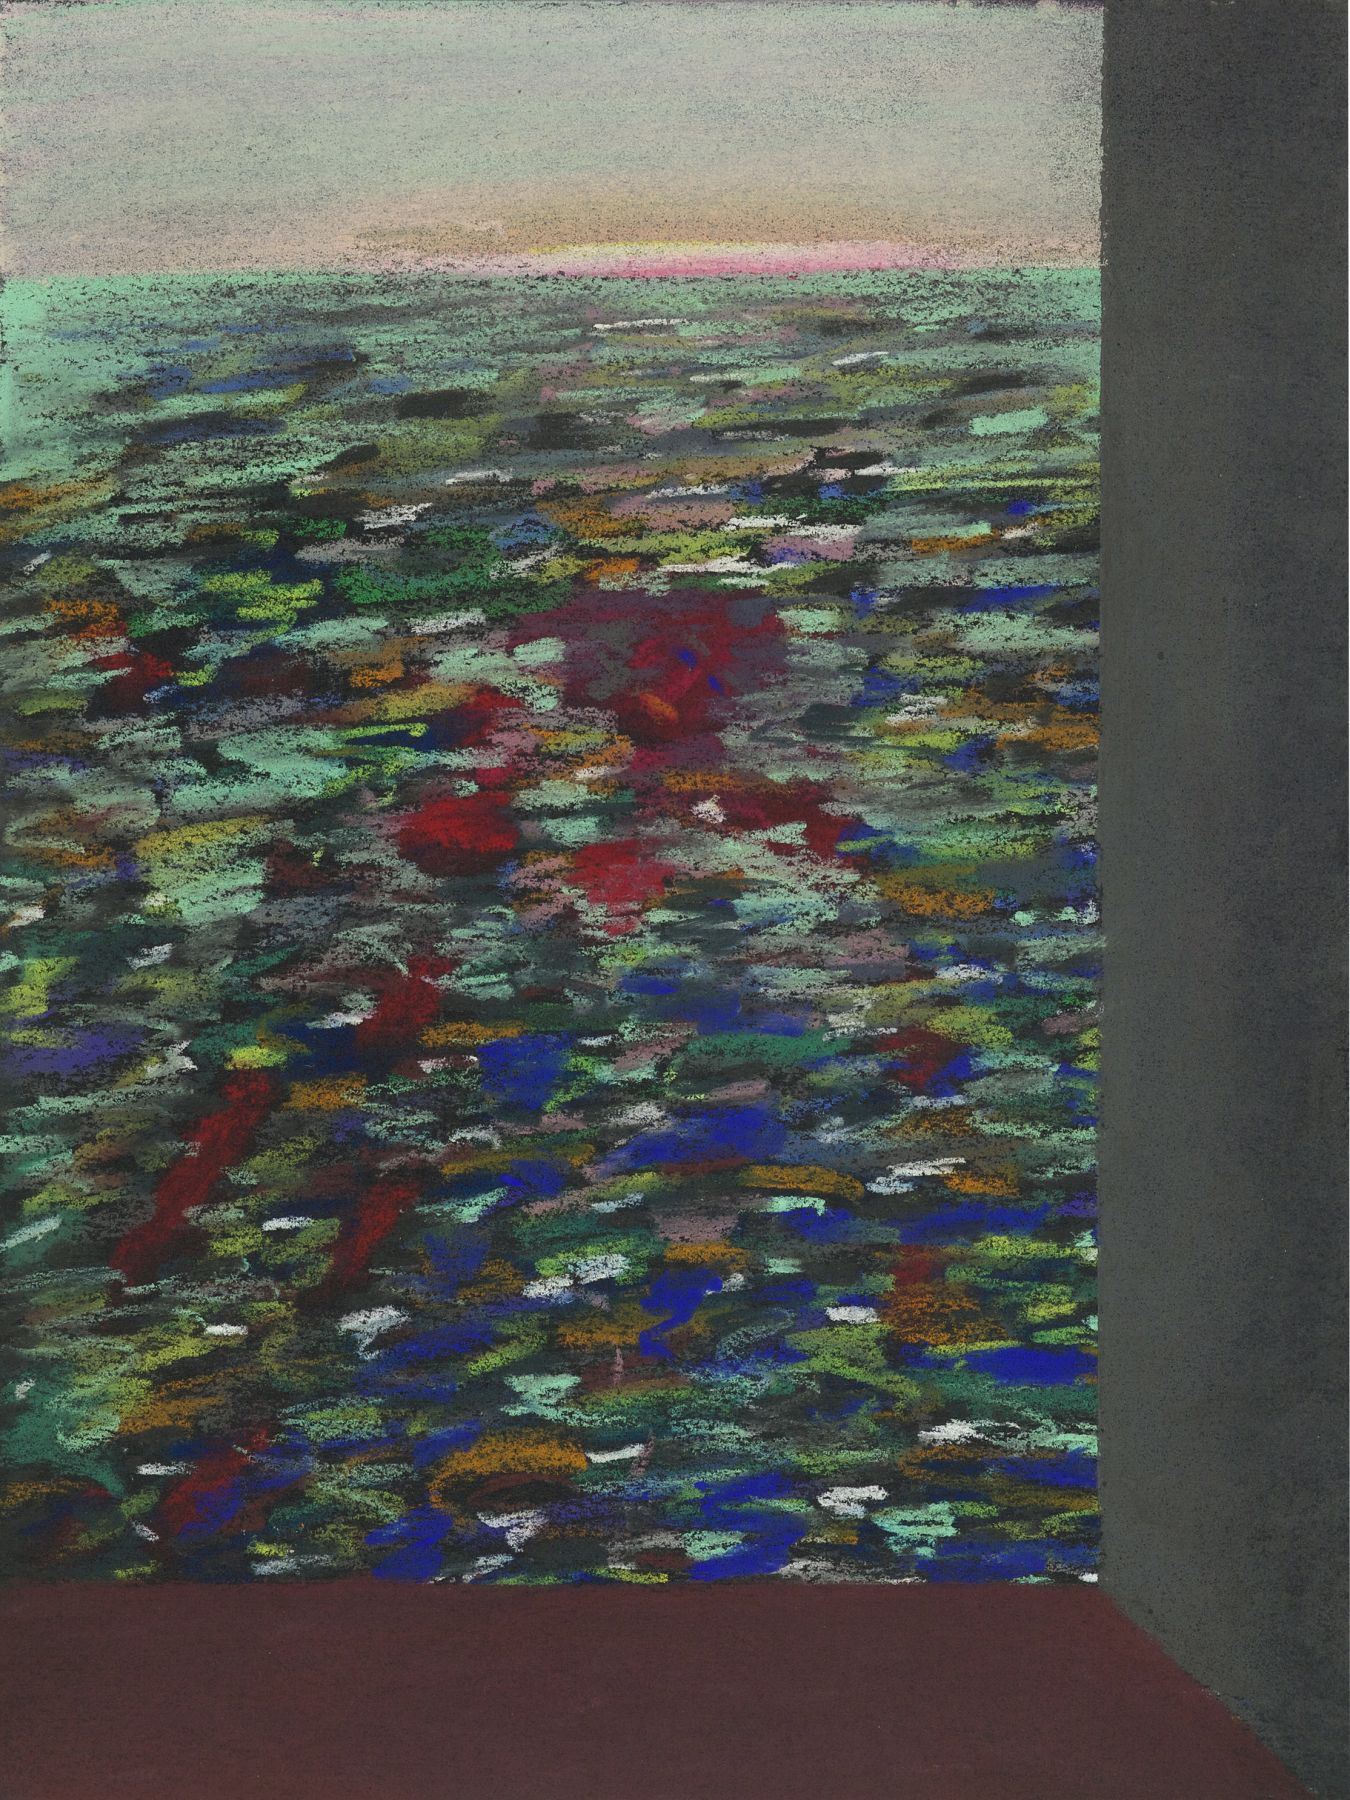 Lucas Samaras, Untitled, August 10, 1974. Pastel on paper, 13 x 10 inches.